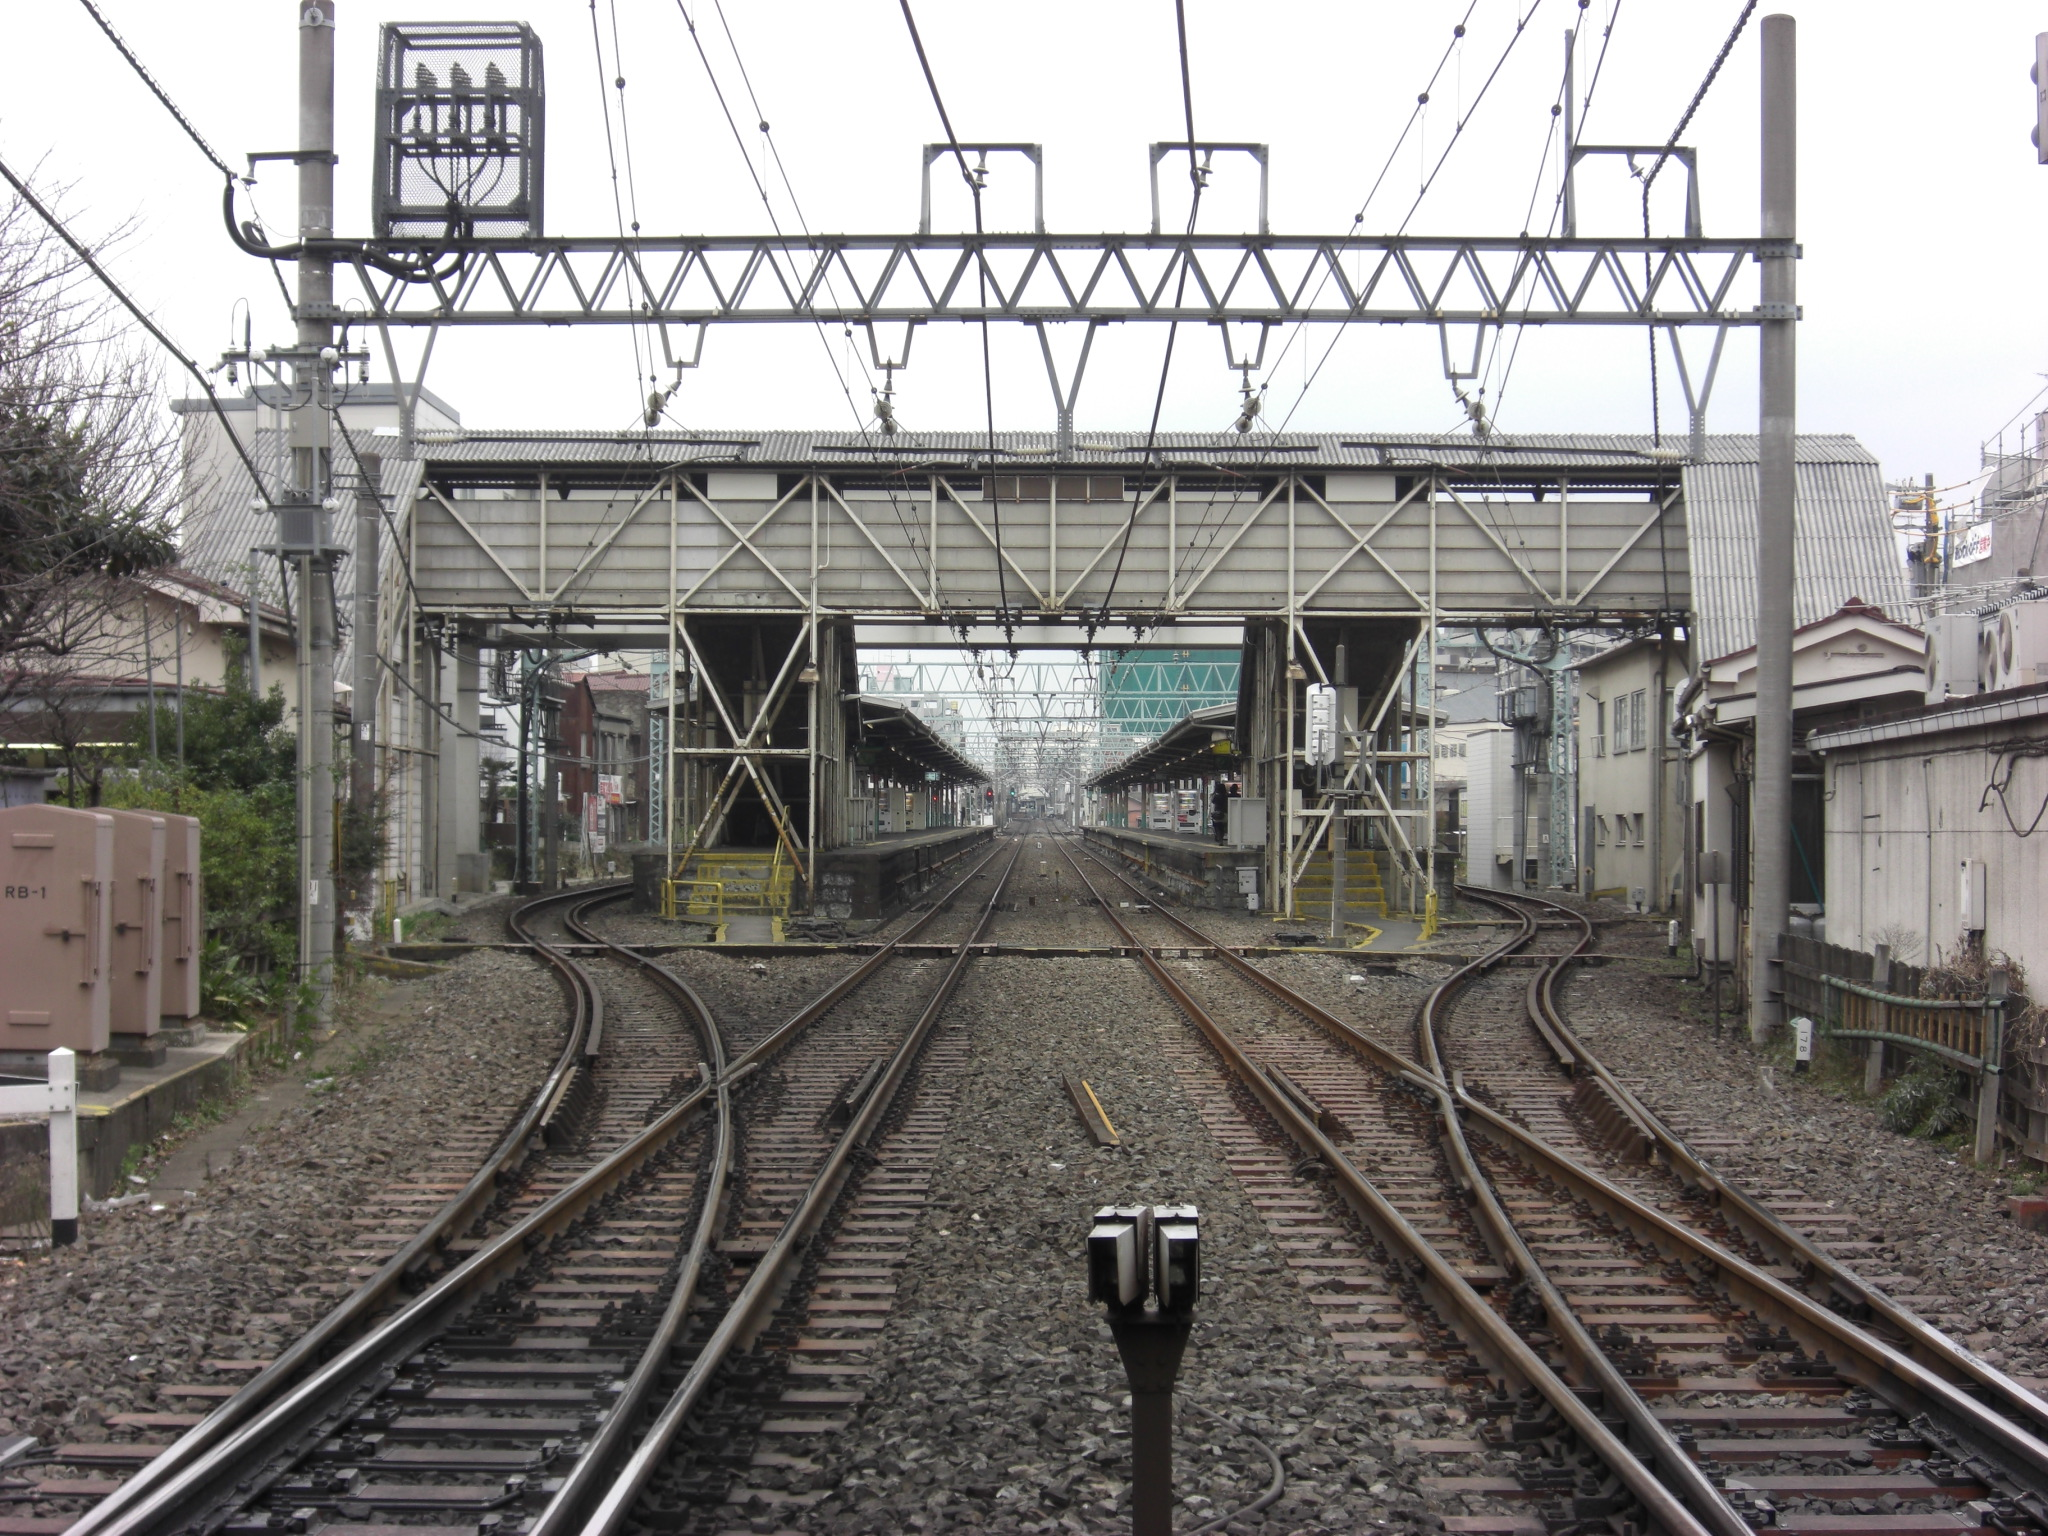 https://upload.wikimedia.org/wikipedia/commons/8/8c/NakaItabashi-st-Platform.JPG